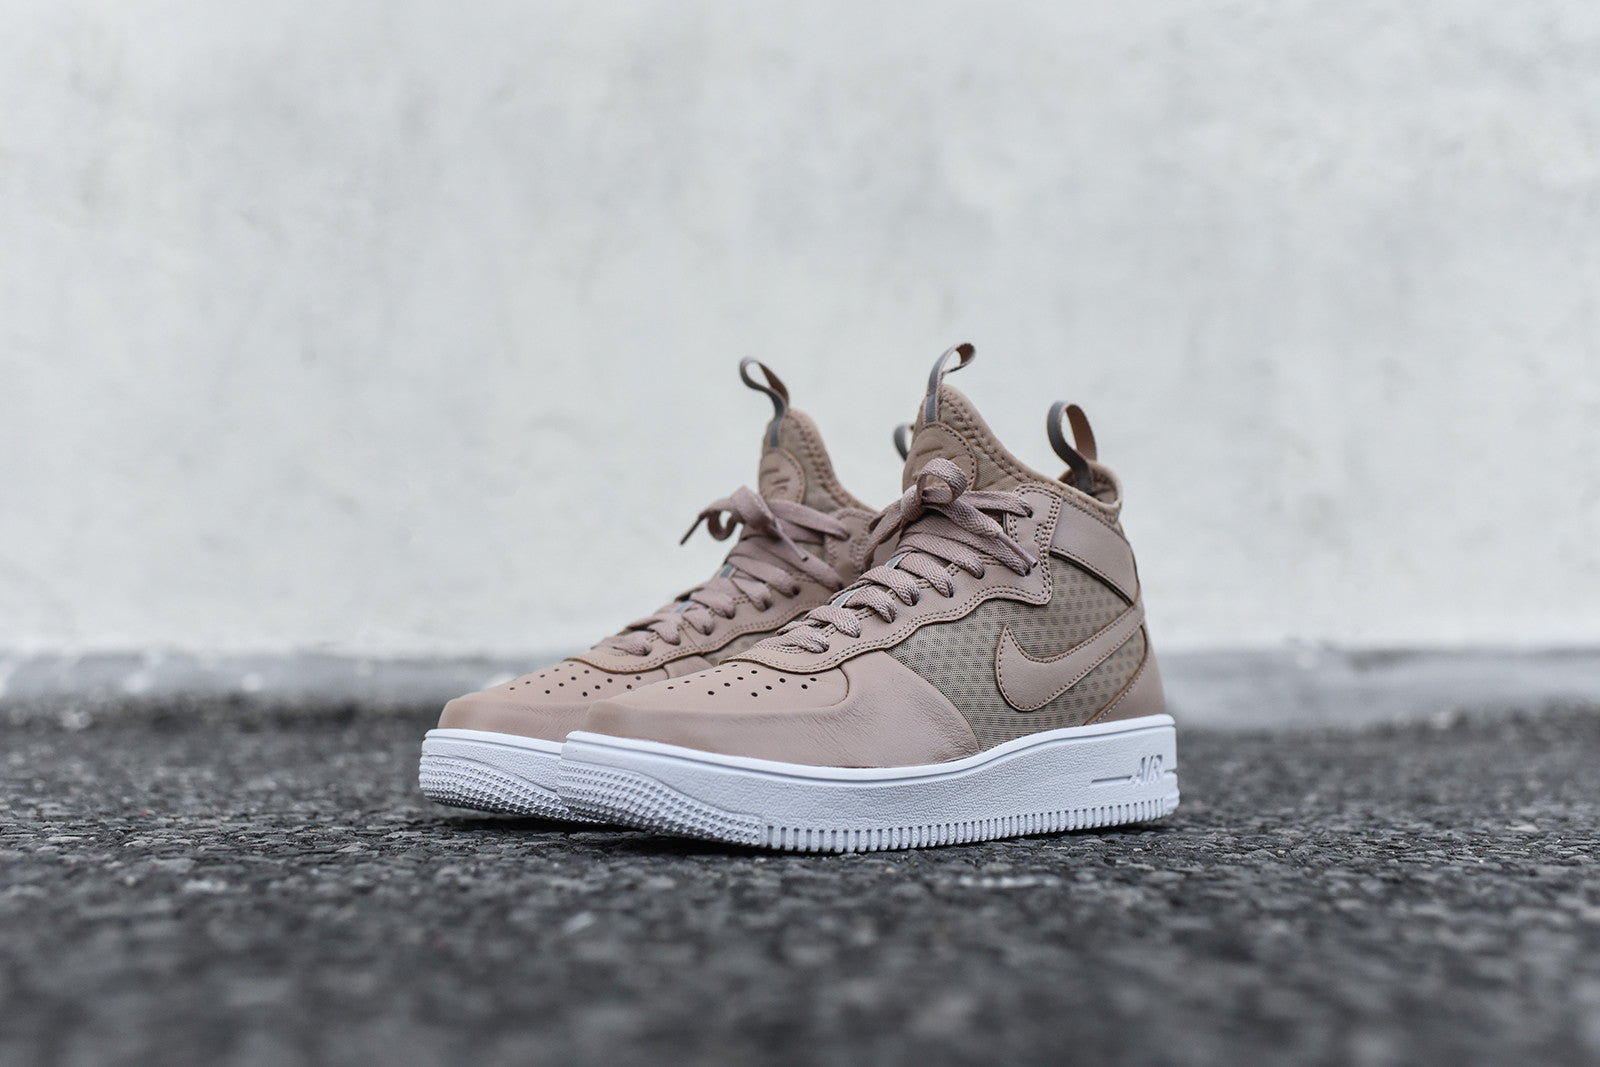 97d8781b433 Nike WMNS Air Force 1 Ultraforce Mid - Vachetta Tan – Kith